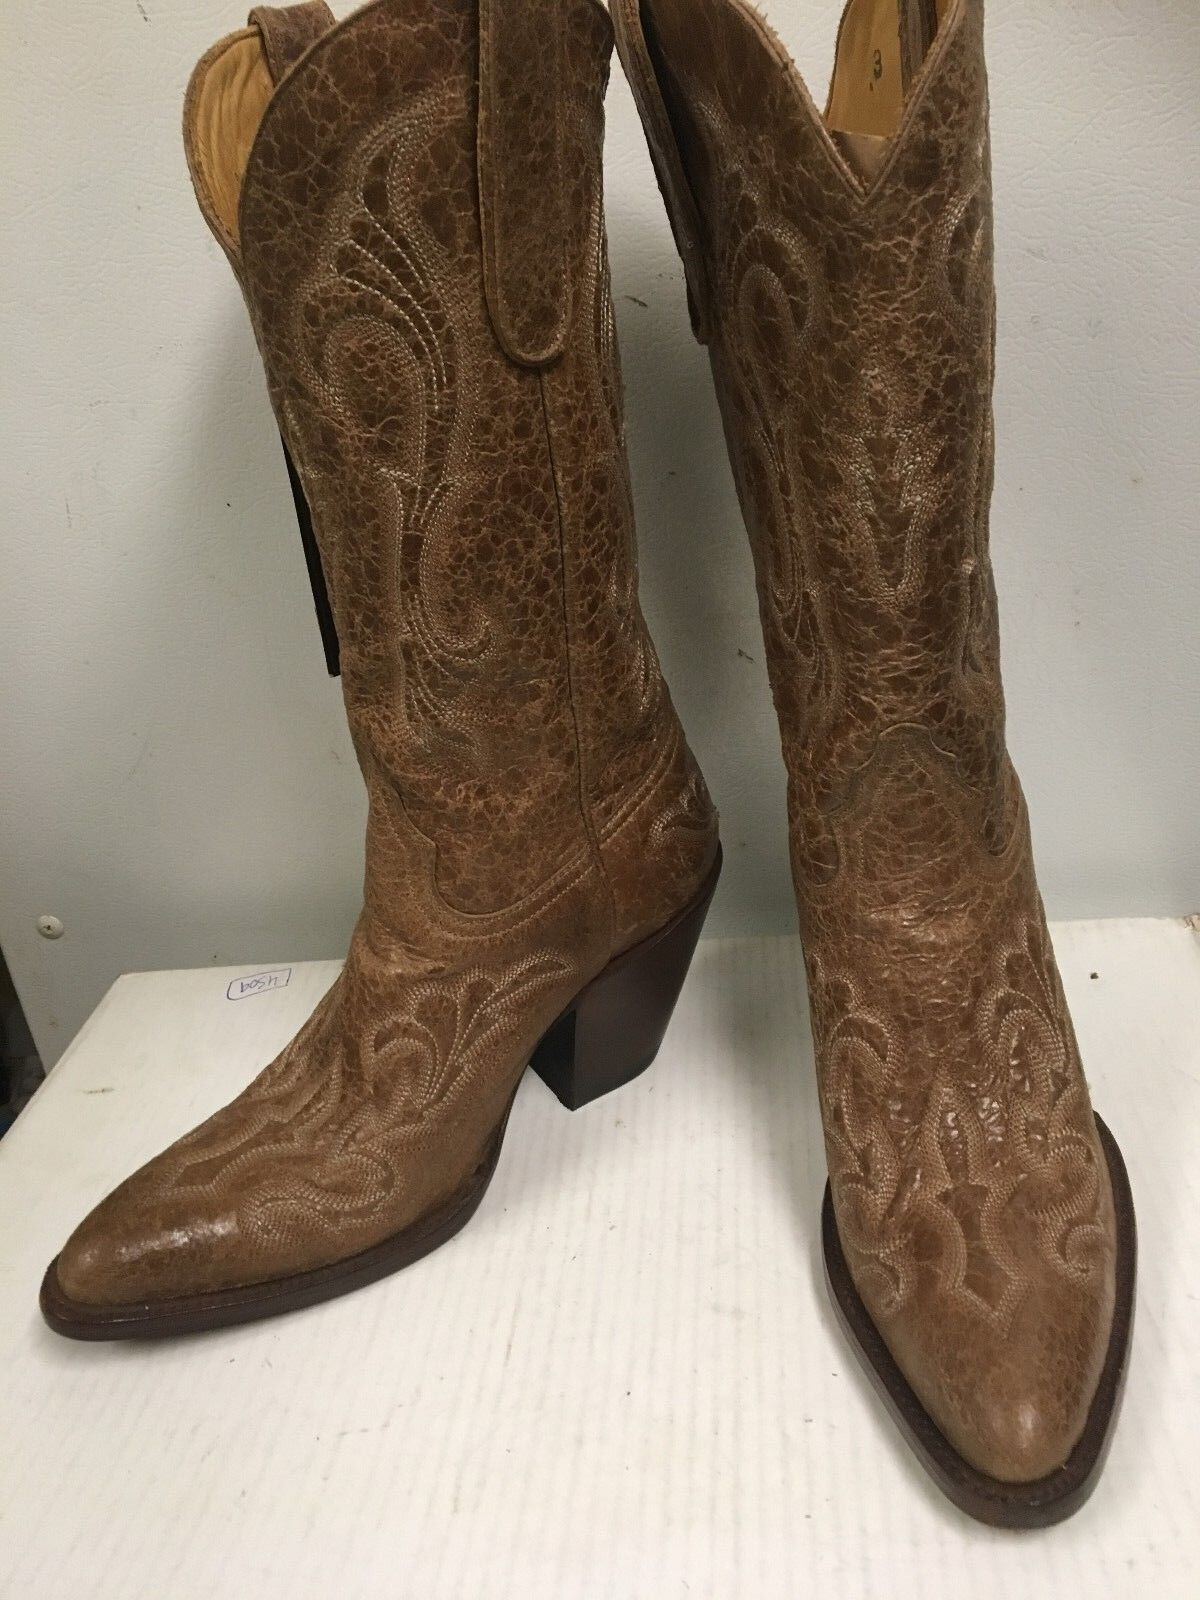 Star Women's Western  Leather  Boots 6002 Light Brown Oryx Rocco Size 7 B NEW